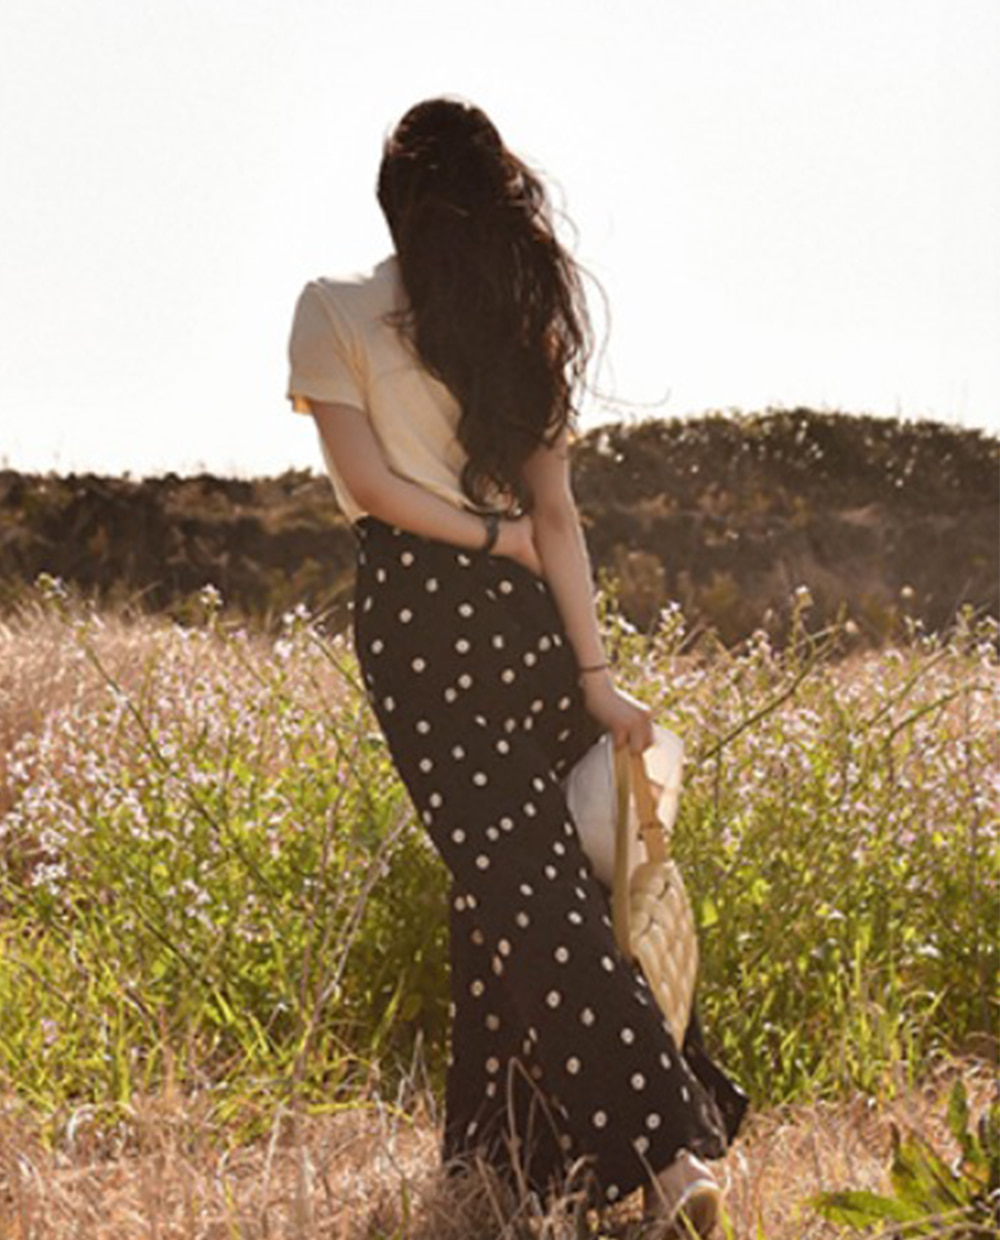 Daisy long skirt